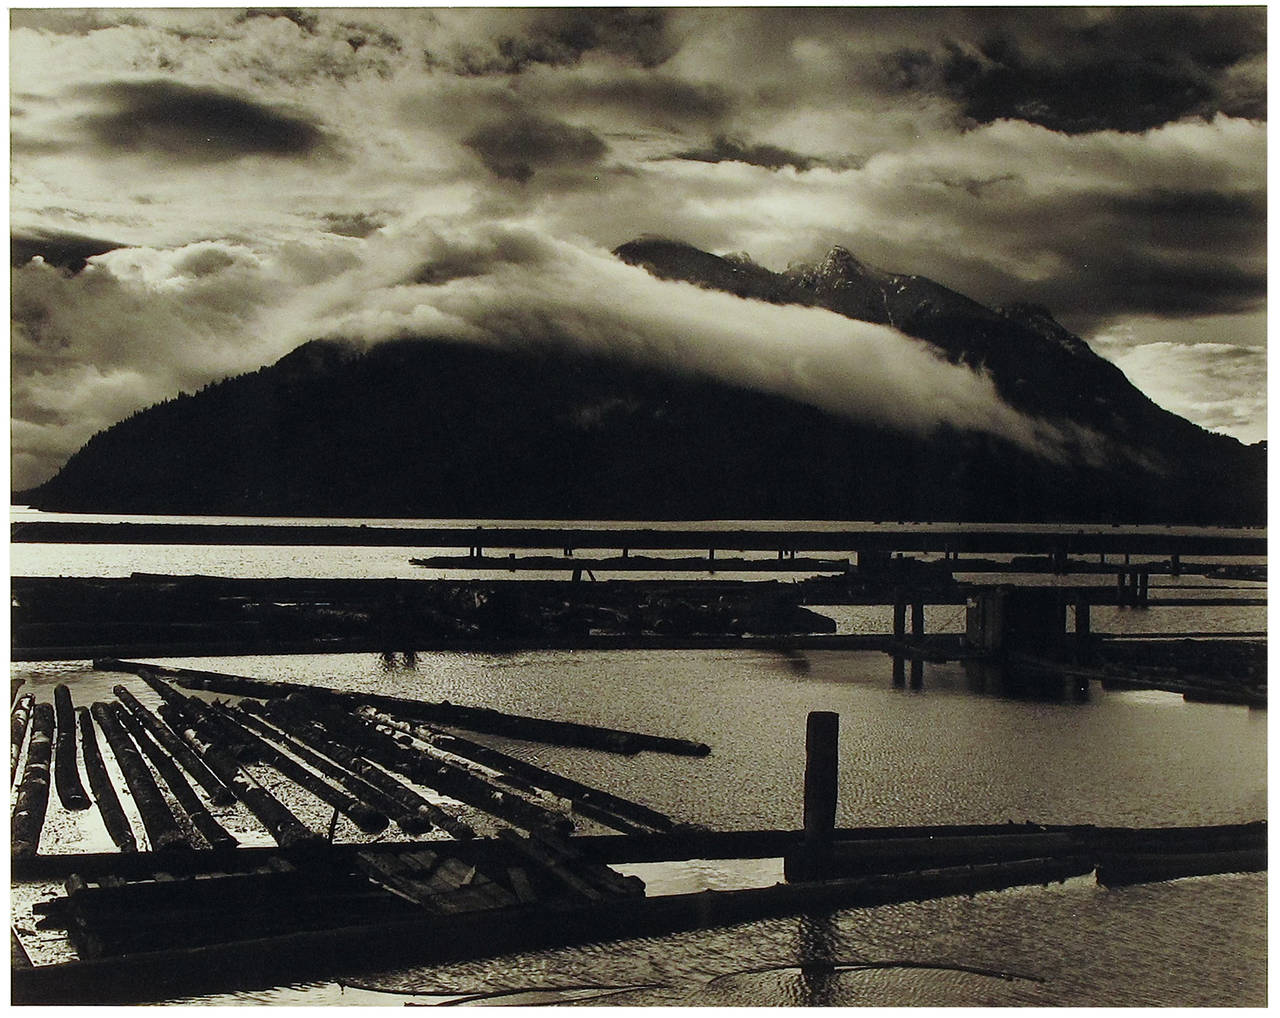 Logging Yard (Vancouver Island) - Photograph by Brett Weston